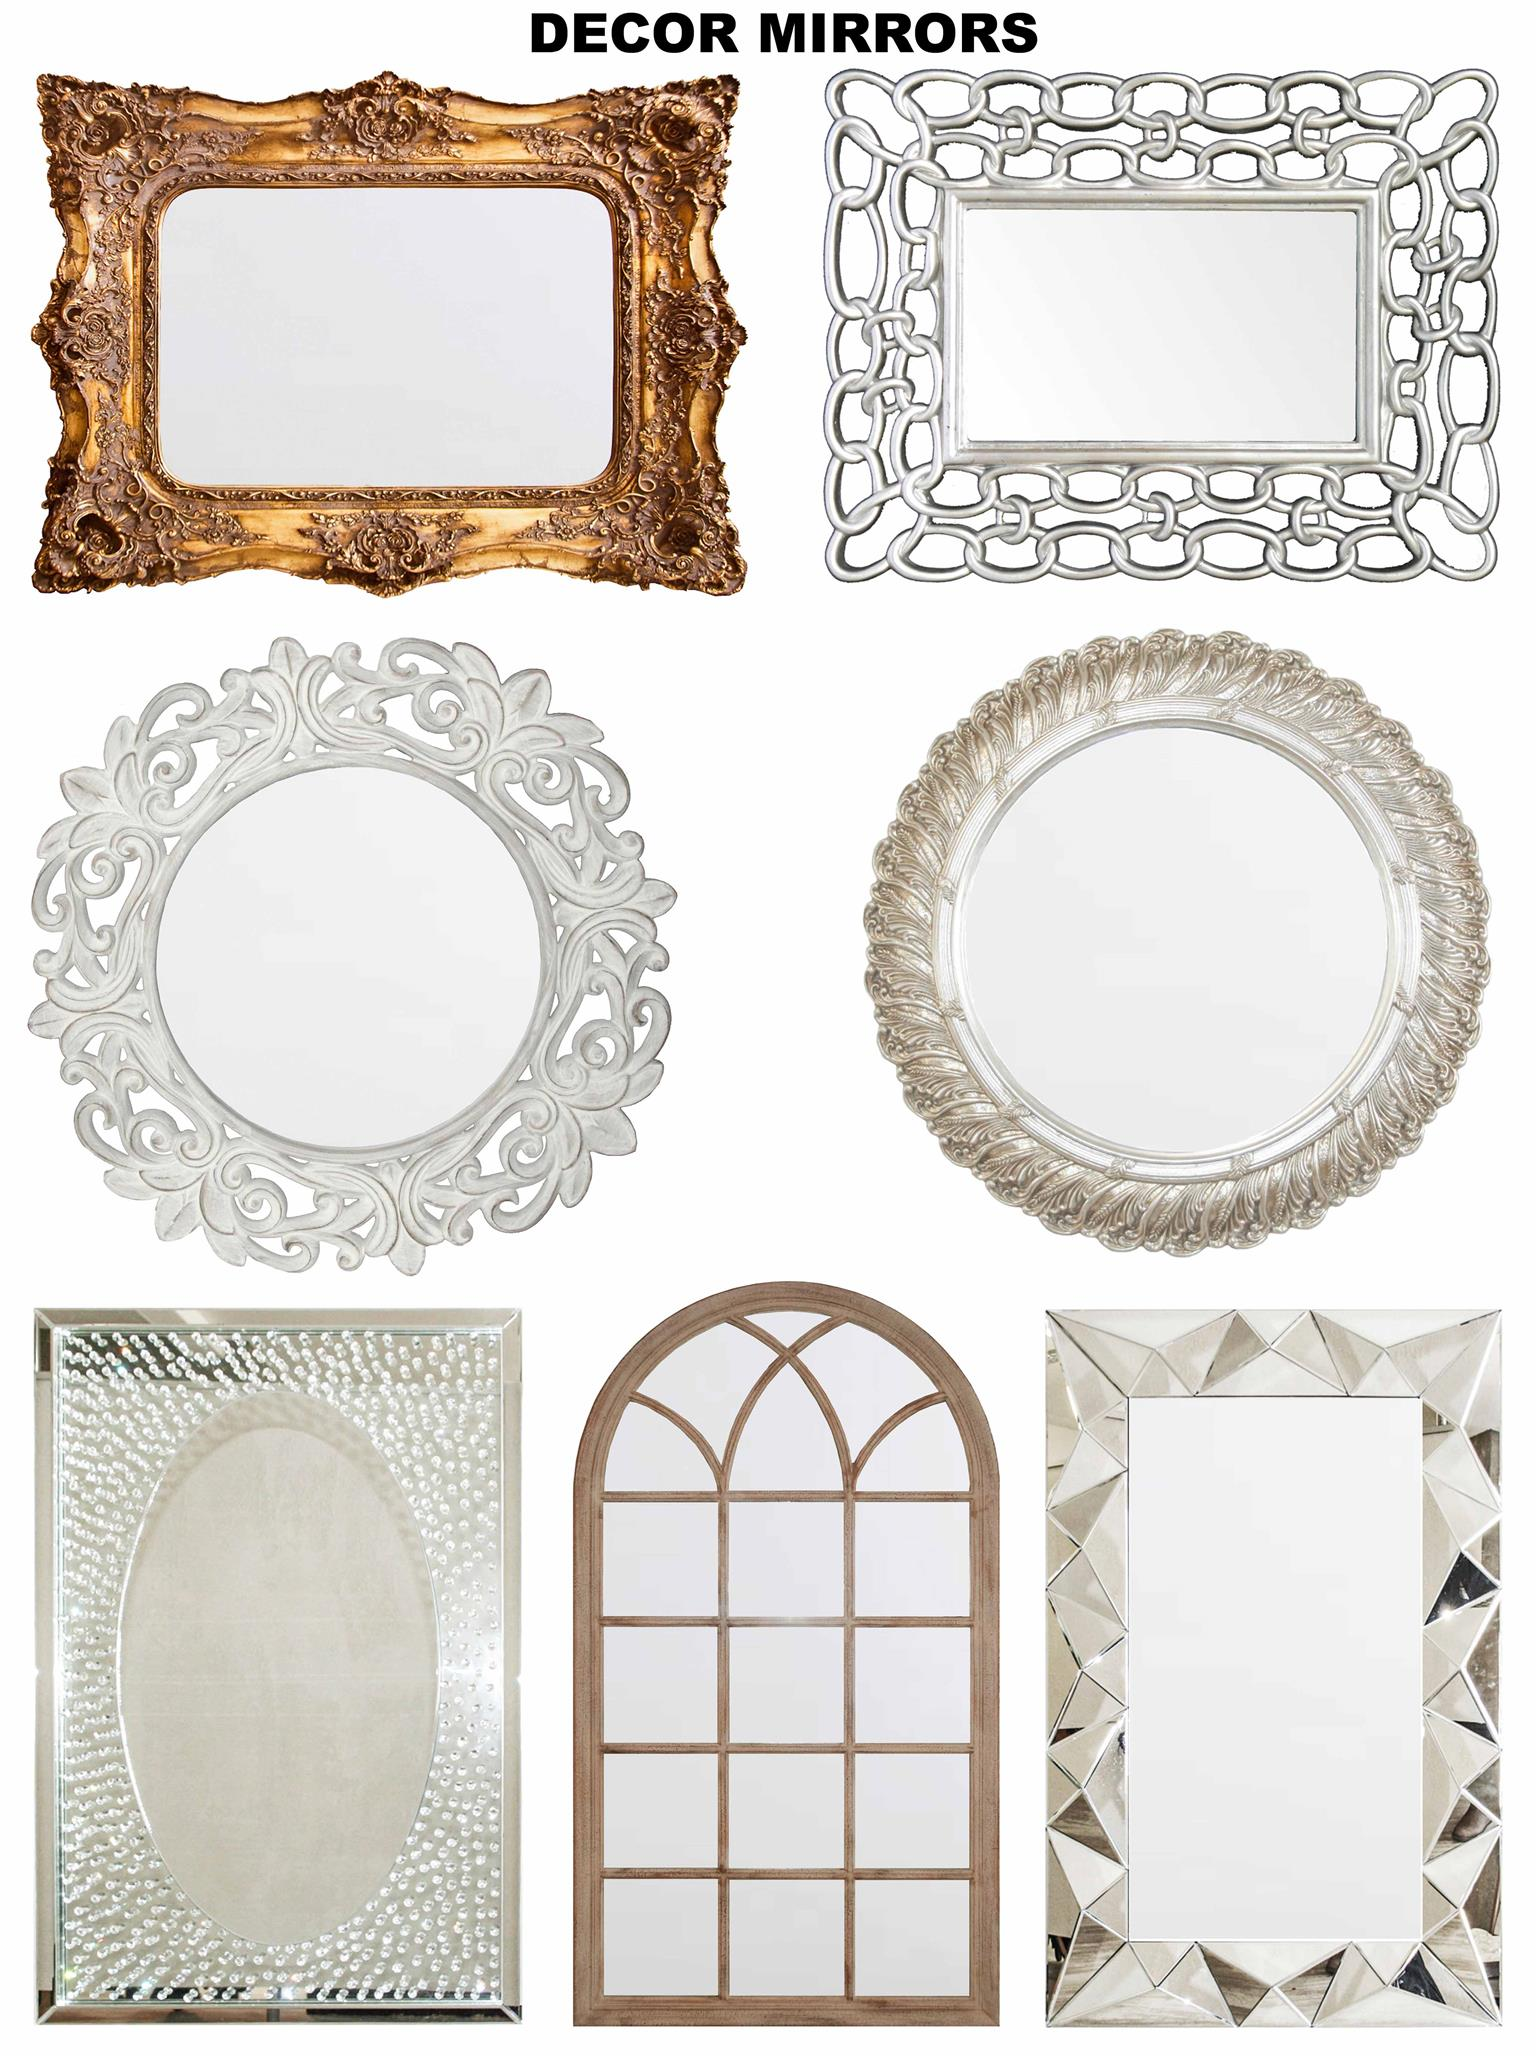 Exclusive Mirrors & Wall Decor